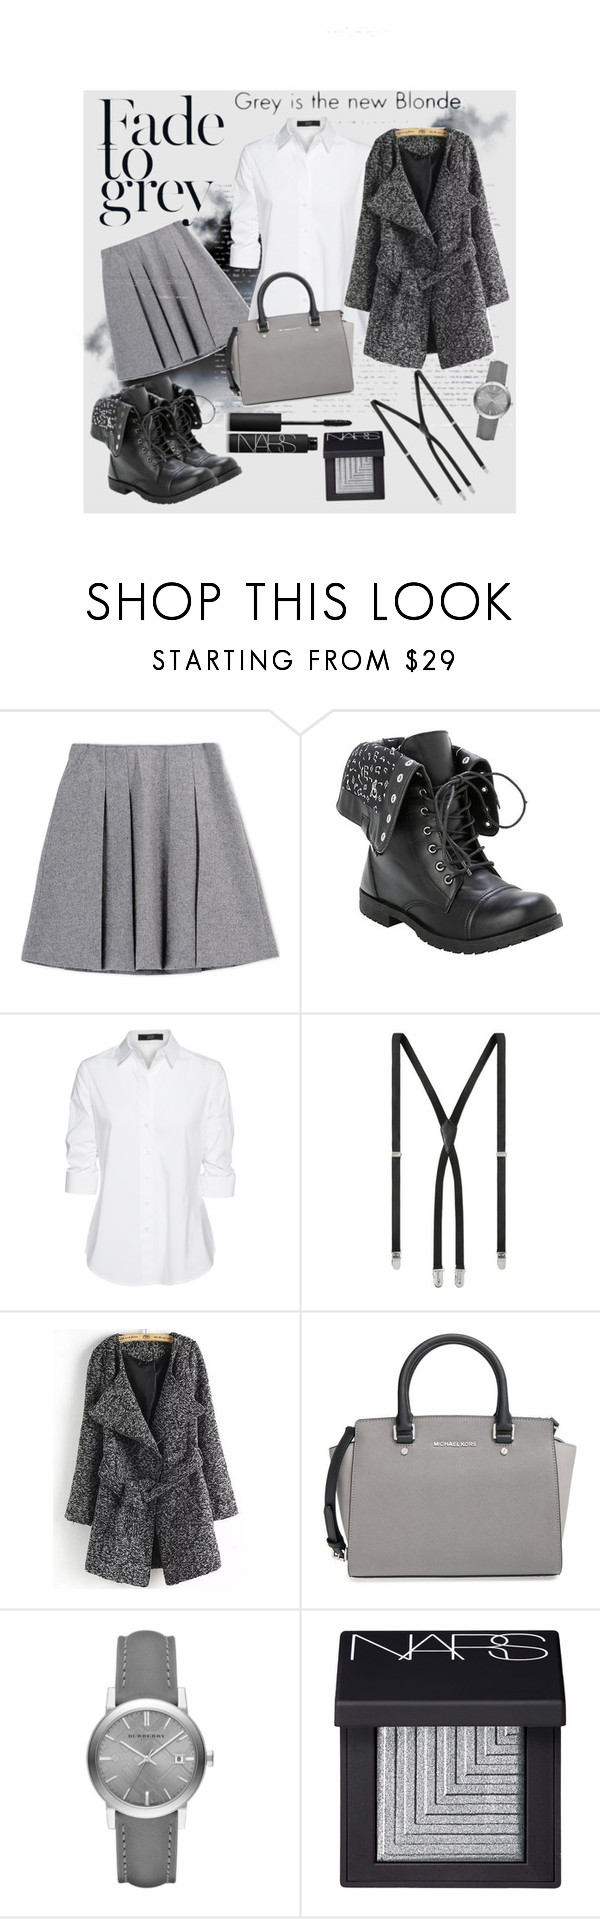 """""""Grey day"""" by ina-kis ❤ liked on Polyvore featuring moda, Fall Winter Spring Summer, Dansk, Steffen Schraut, Yves Saint Laurent, MICHAEL Michael Kors, Burberry y NARS Cosmetics"""